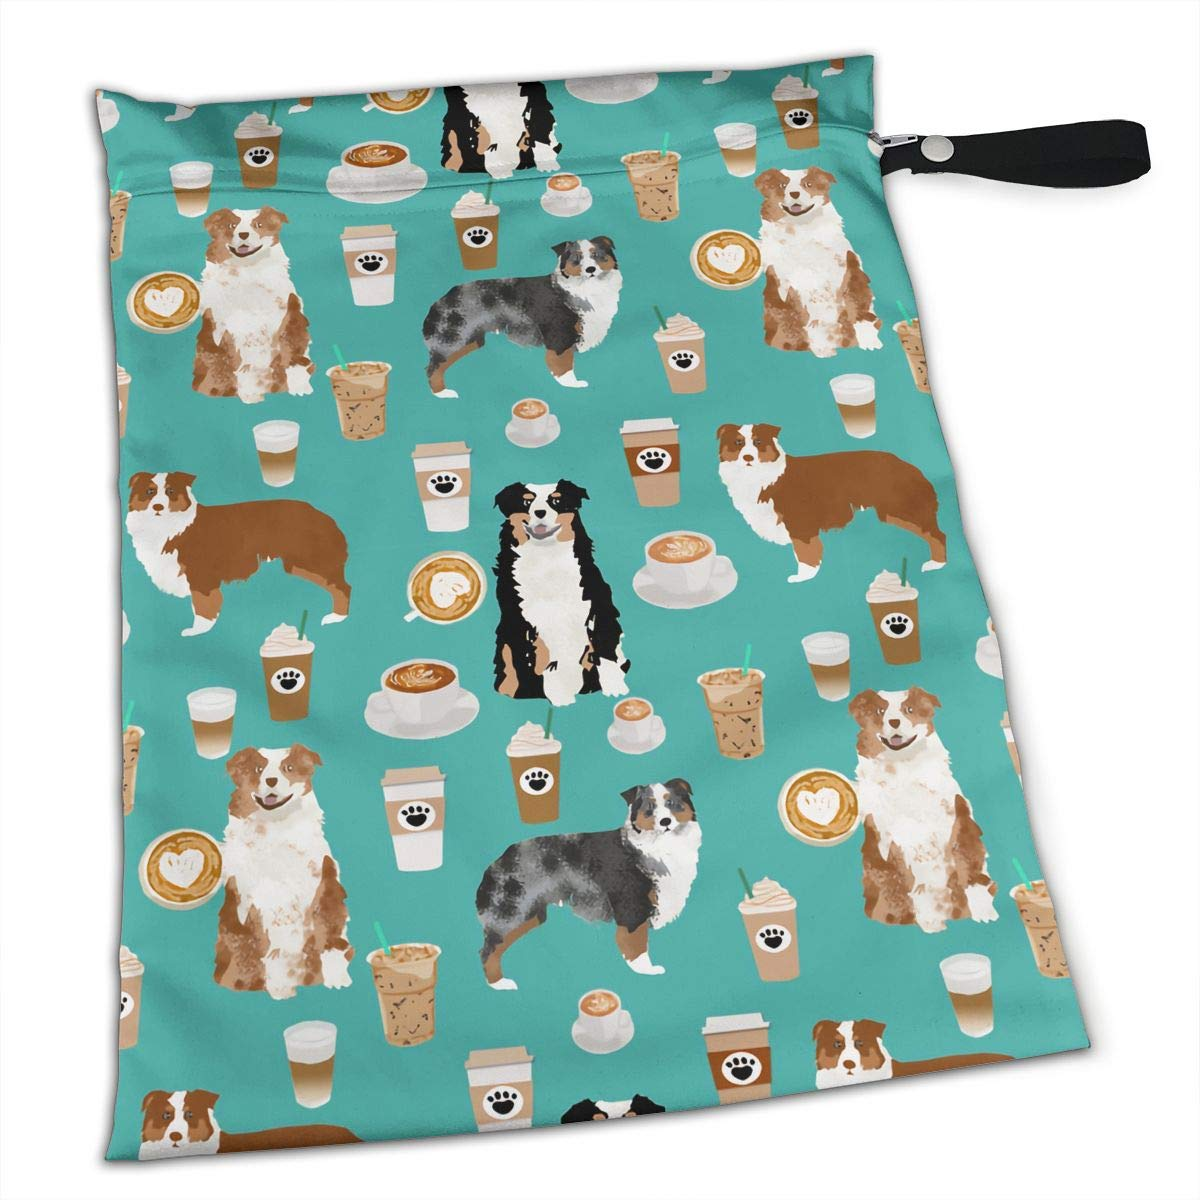 Australian Shepherd Dog Coffee Tote Travel Accessories Size Happens Reusable Laundry Beach Toddler Dry Bag for Workout Swim Wet Kid Baby Gym Clothes Cloth Diaper Wetbag by Coobaby